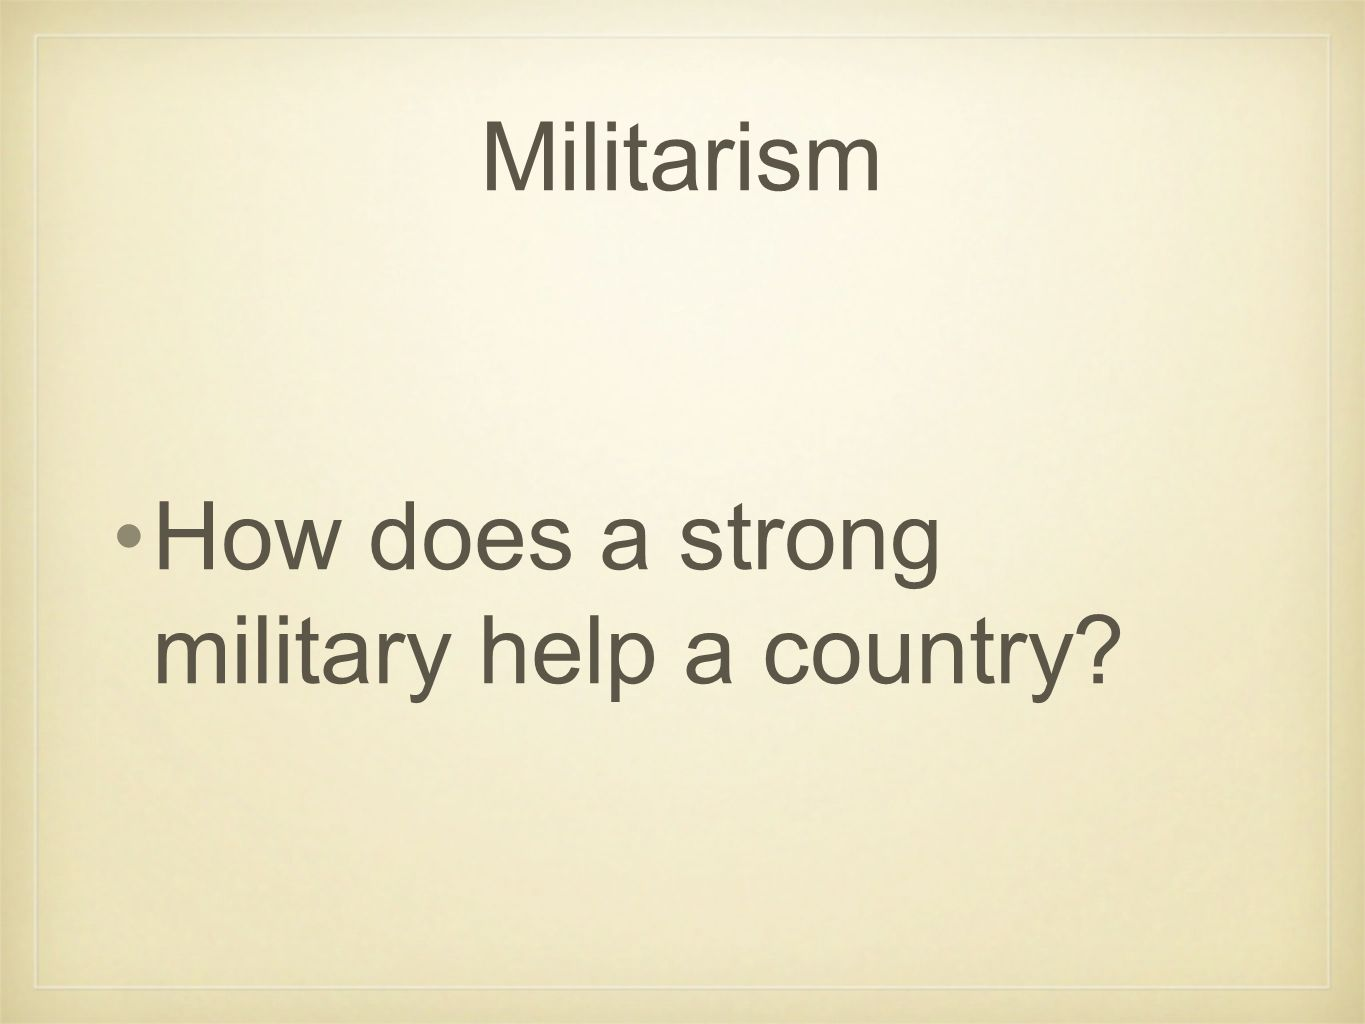 Militarism How does a strong military help a country